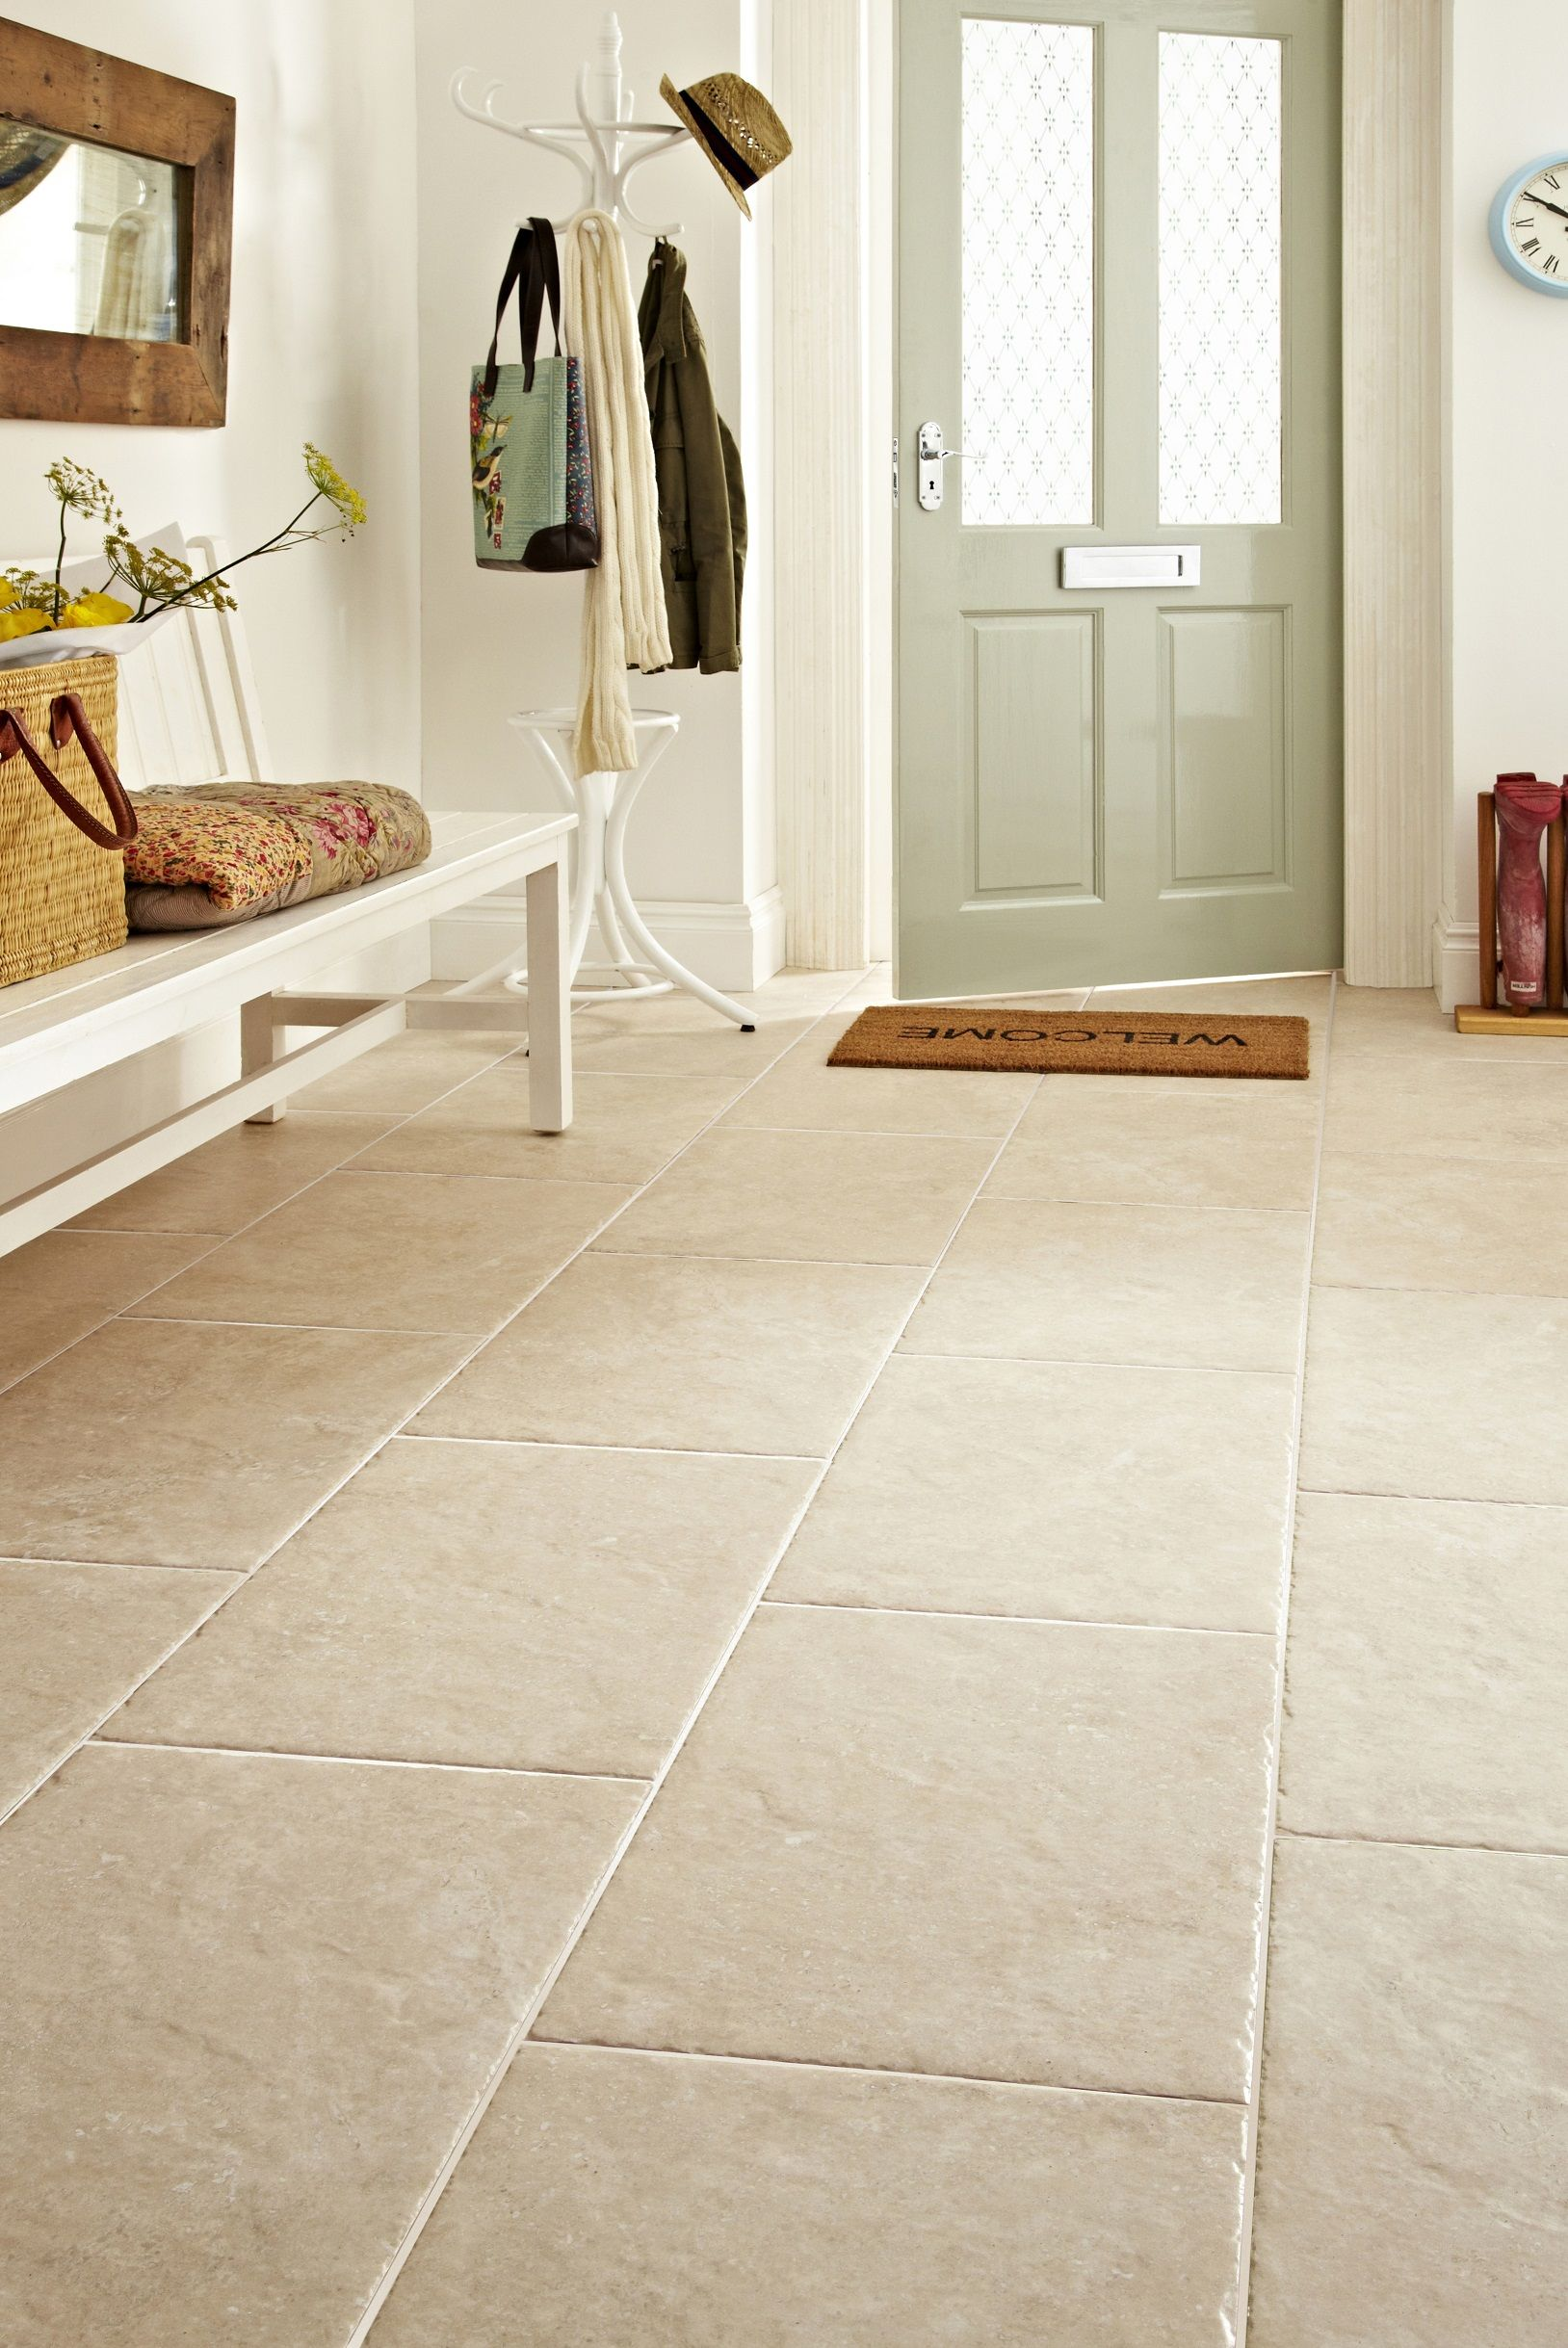 Devon Bone From Topps Tiles   Potential For The Dining Room Floor